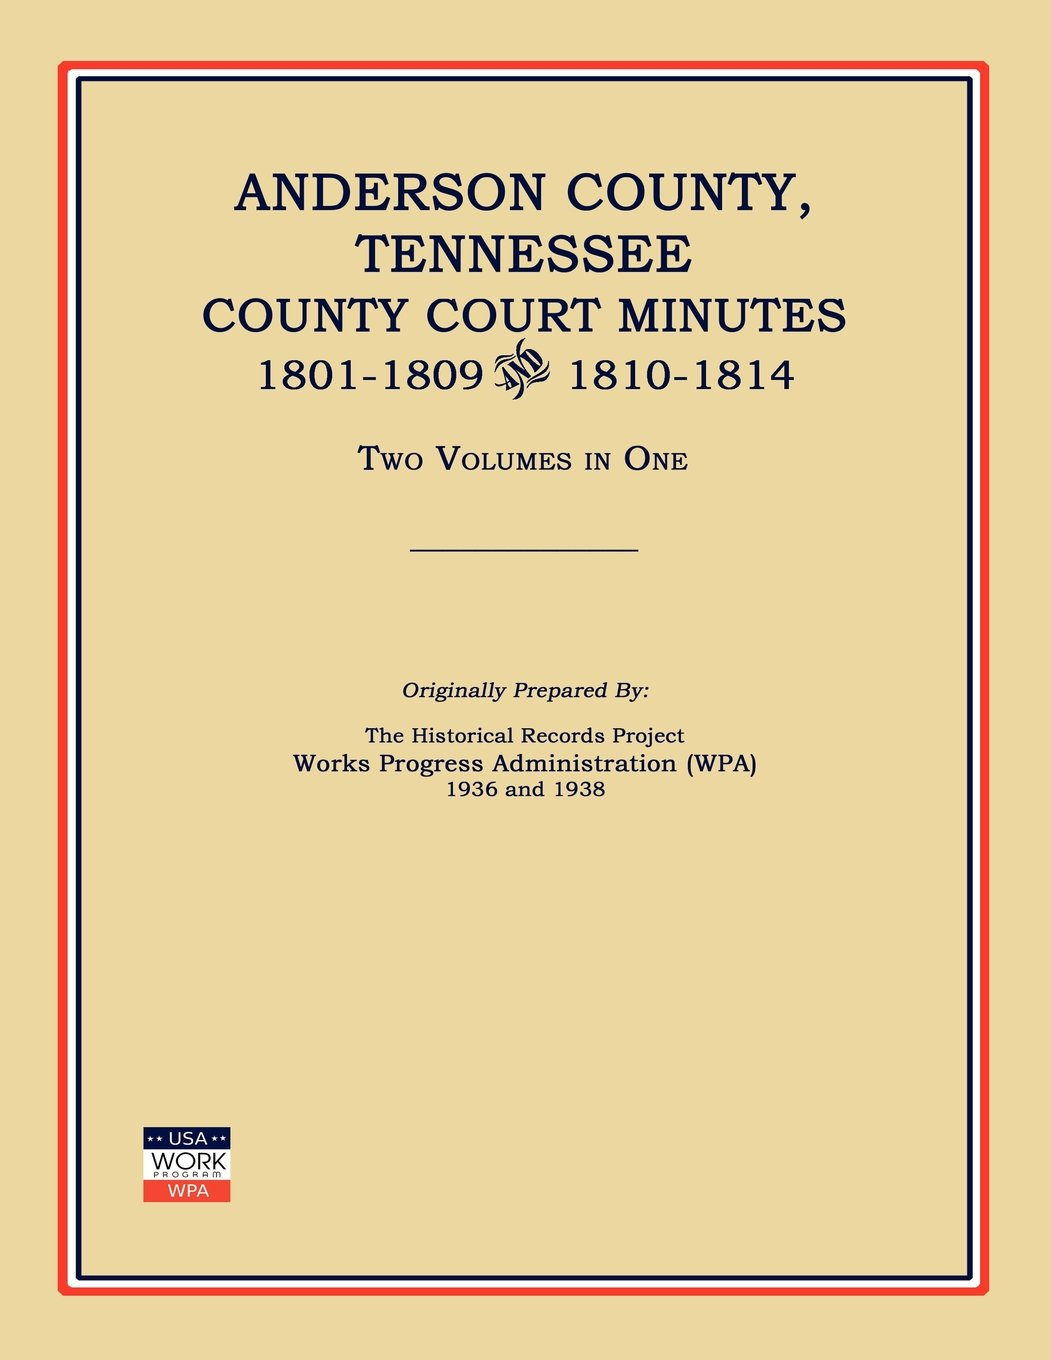 Anderson County, Tennessee, County Court Minutes, 1801-1809 and 1810-1814. Two Volumes in One pdf